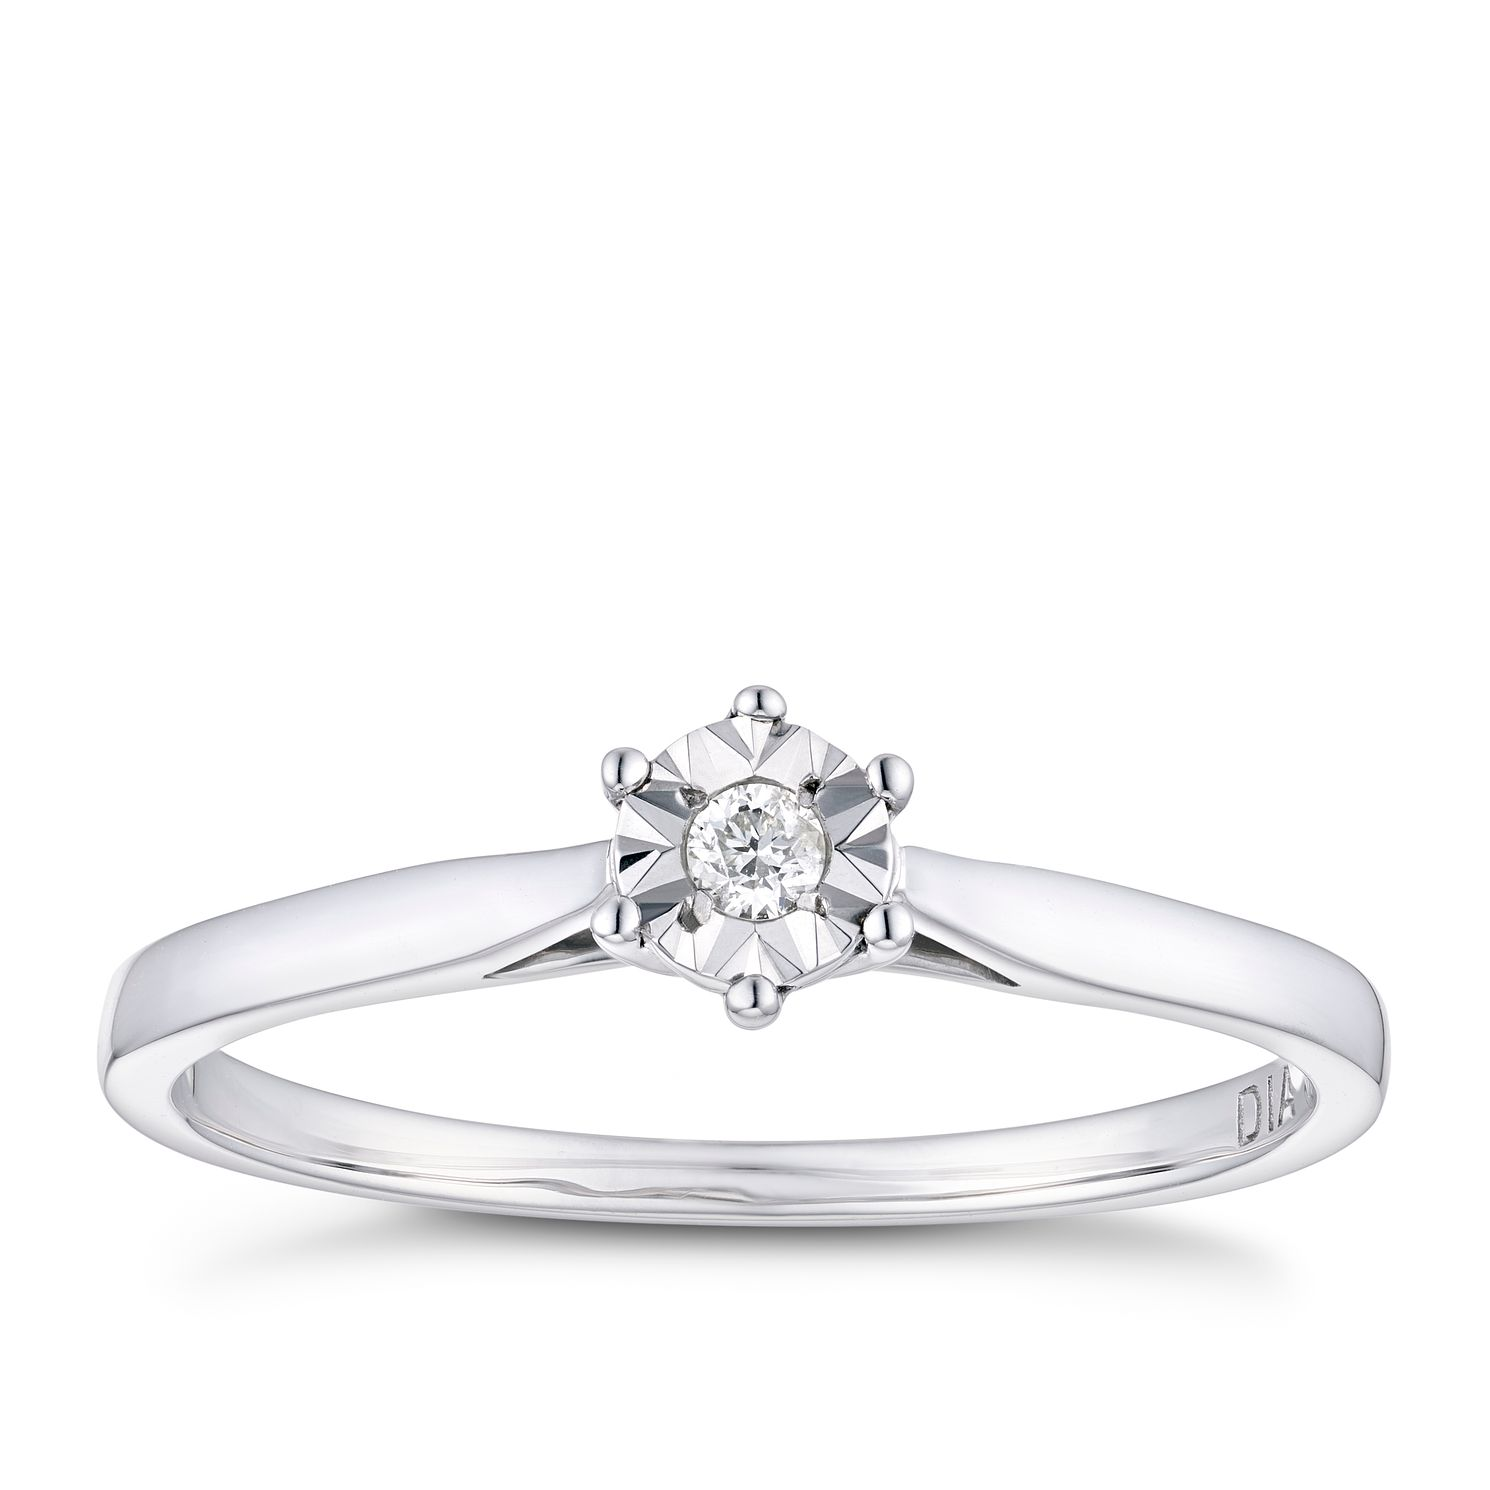 jewelry of prong jewellery manufacturer head solitaire picture style basket fine ring